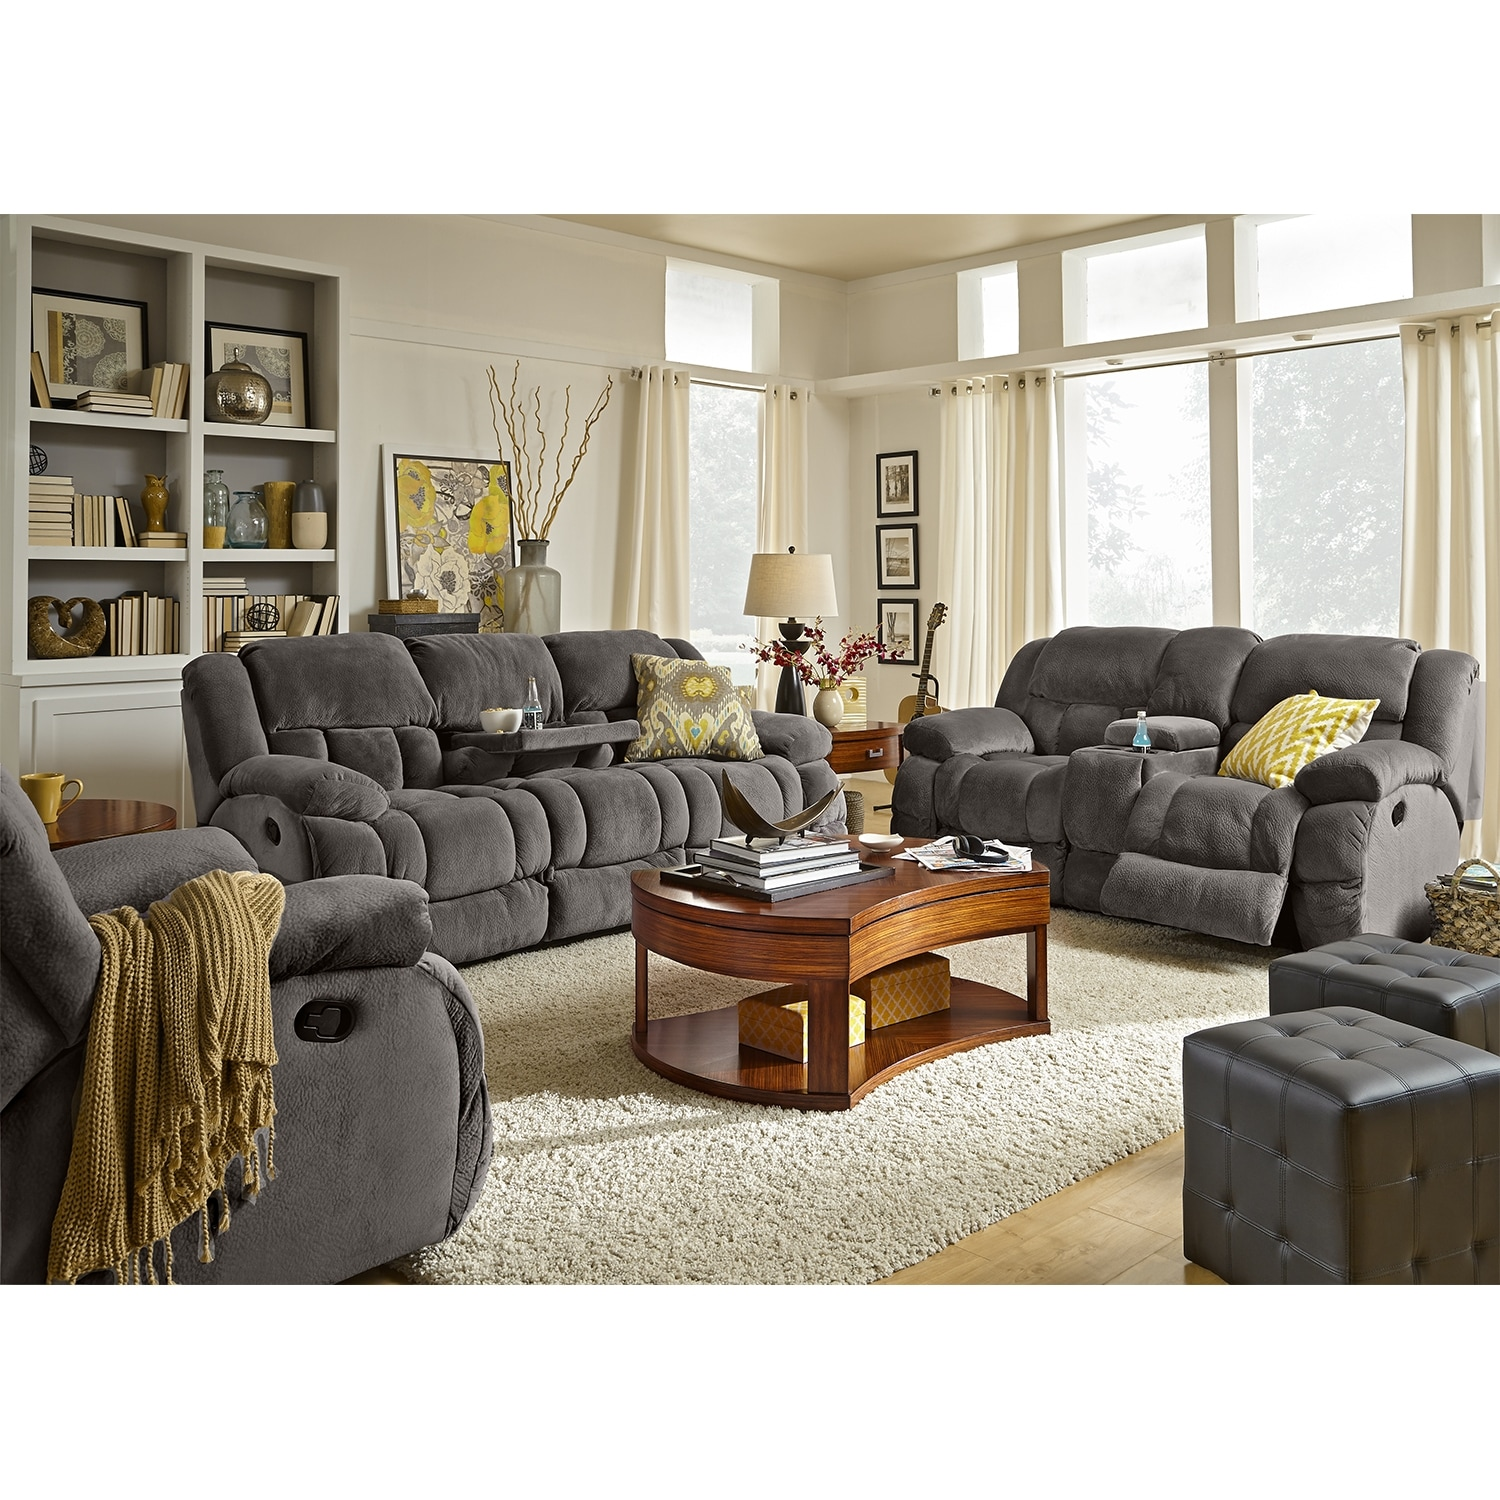 Park City Dual Reclining Sofa and Loveseat Set Gray